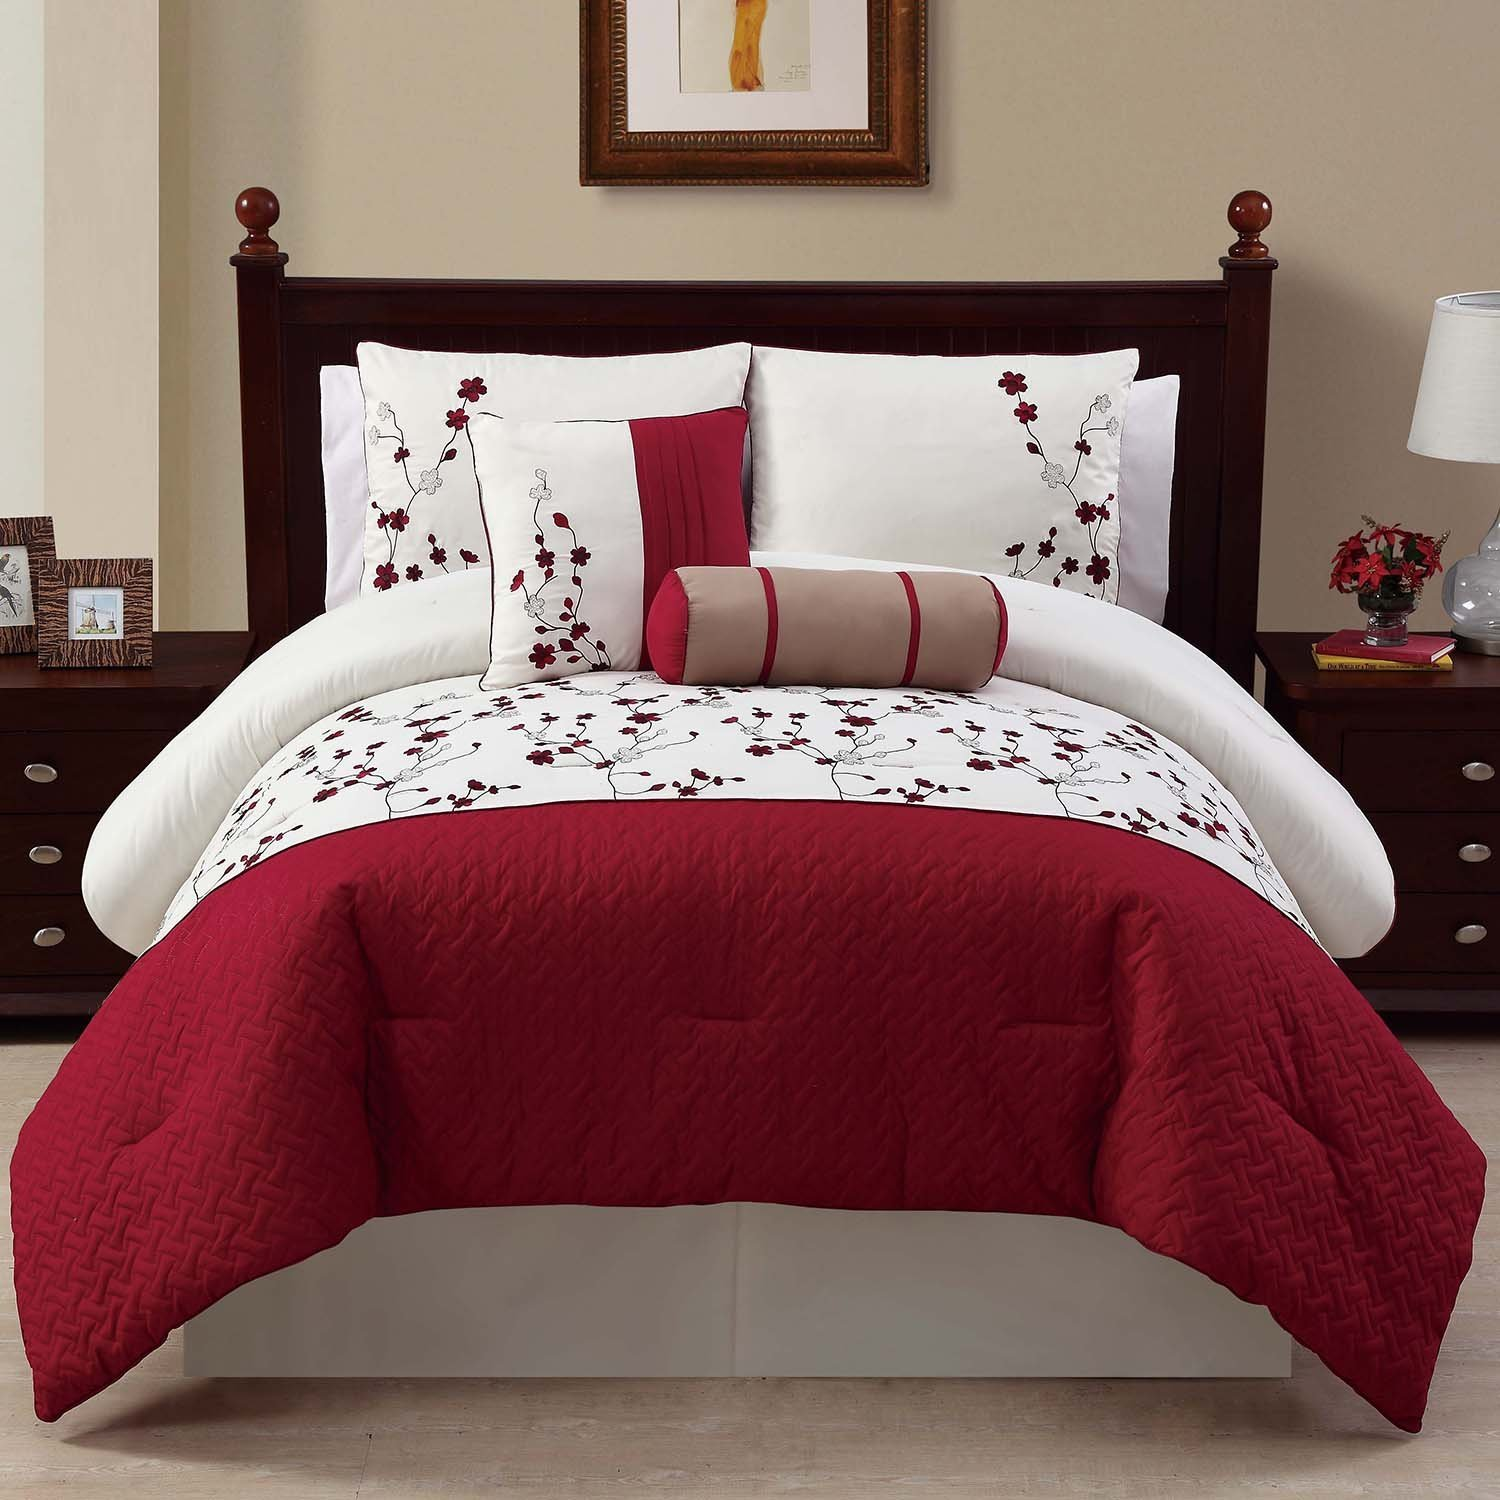 Asian Inspired Comforters, Duvet Covers & Bedding